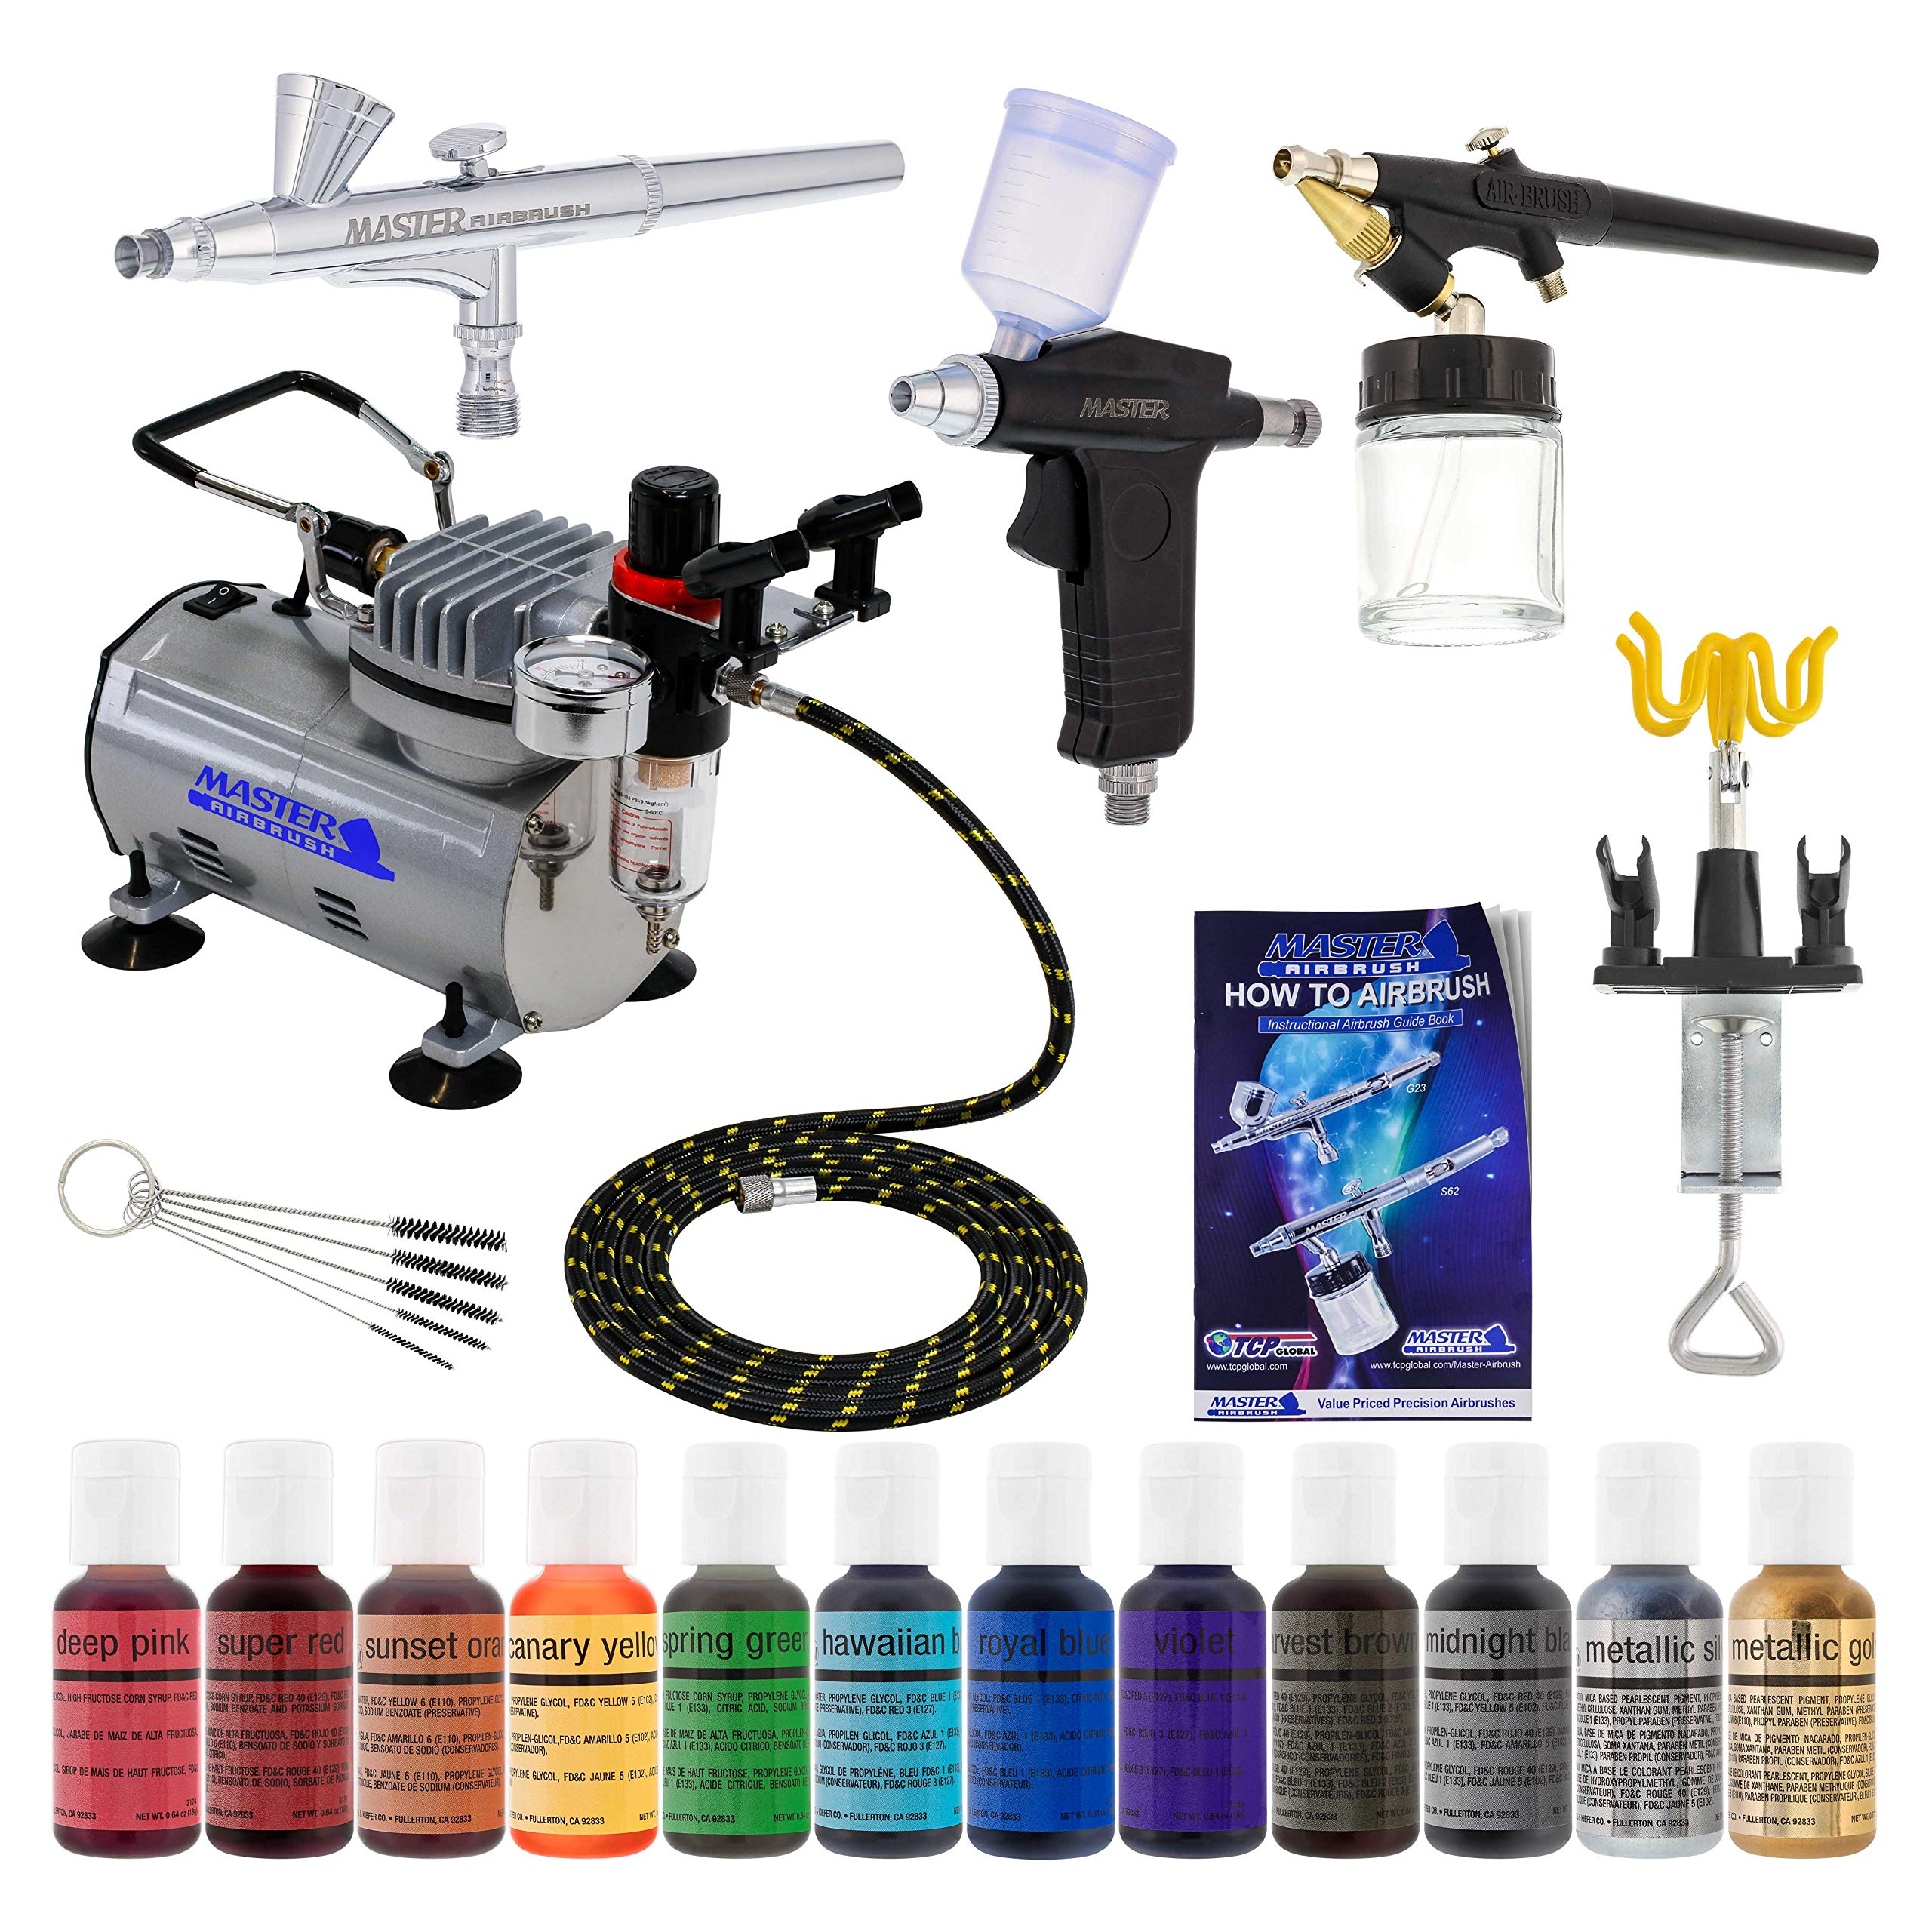 3 Airbrush Master Airbrush Cake Decorating Airbrushing System Kit with Set of 12 Chefmaster Food Colors, Gravity & Siphon Feed Airbrushes, Air Compressor - Decorate Cakes, Cupcakes, Cookies, Desserts by Master Airbrush